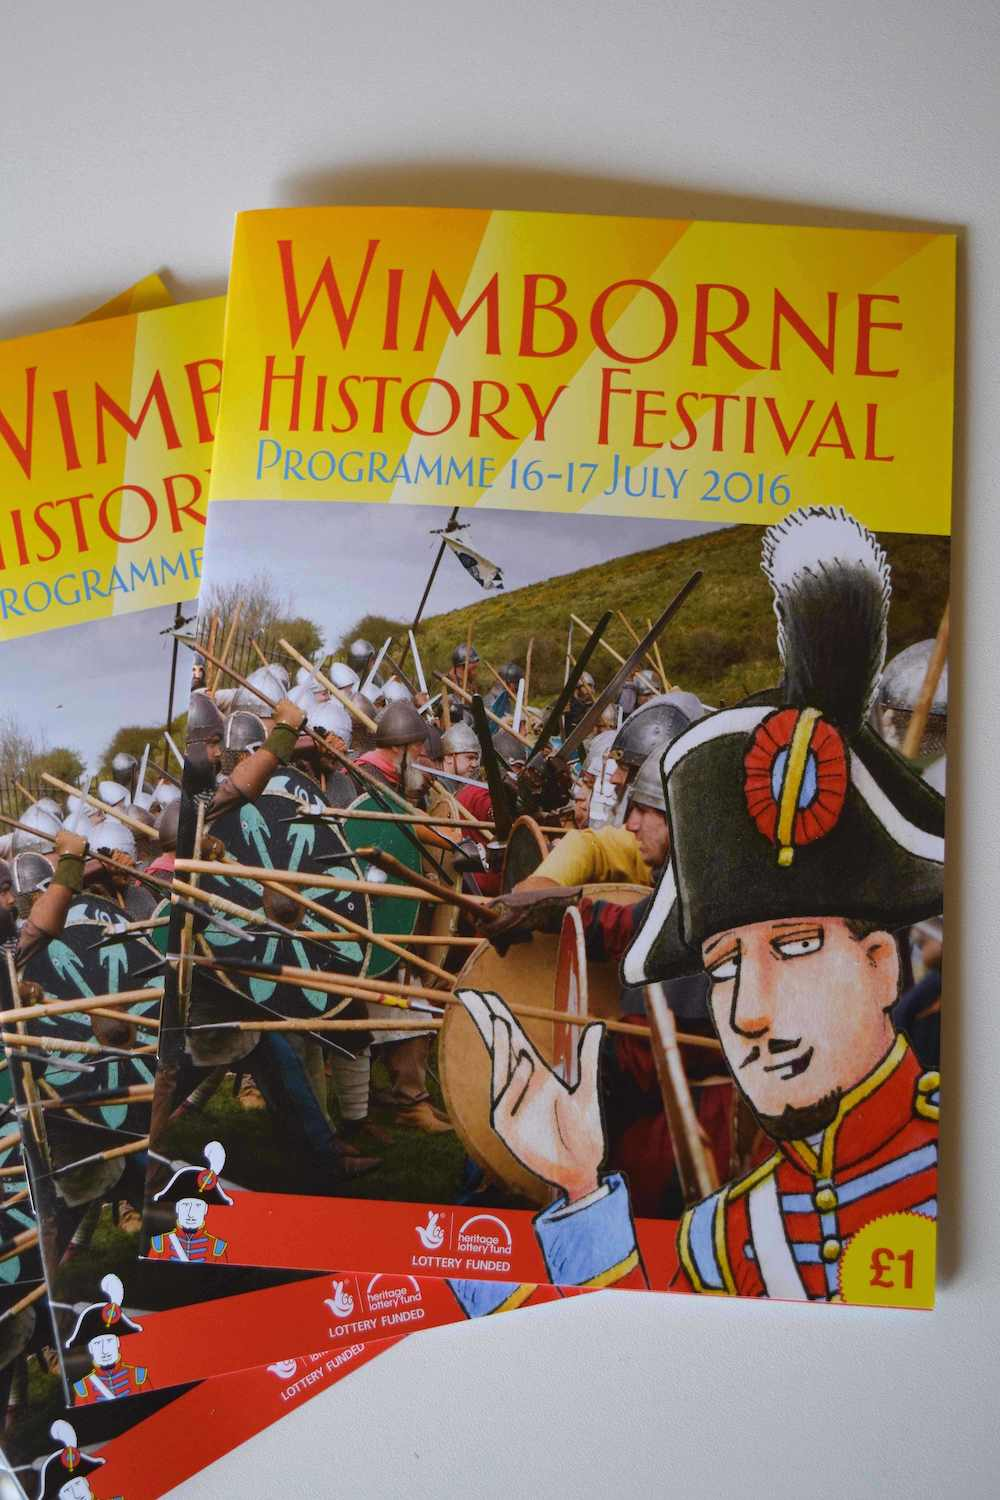 Festival Programme Now Available